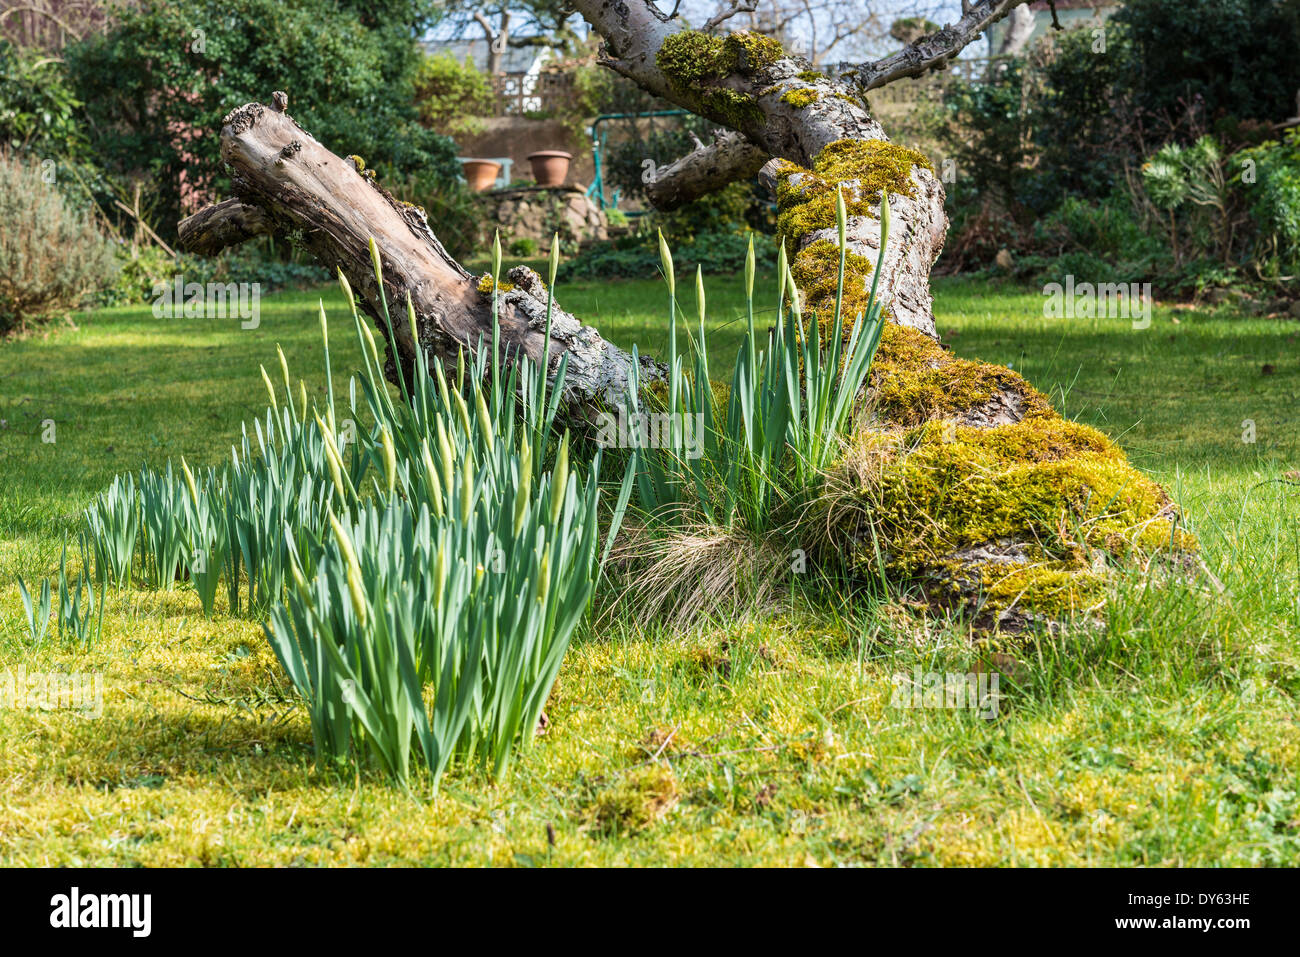 Daffodils growing in garden under old apple tree in spring. Third of sequence of 10 (ten) images photographed over five weeks. - Stock Image